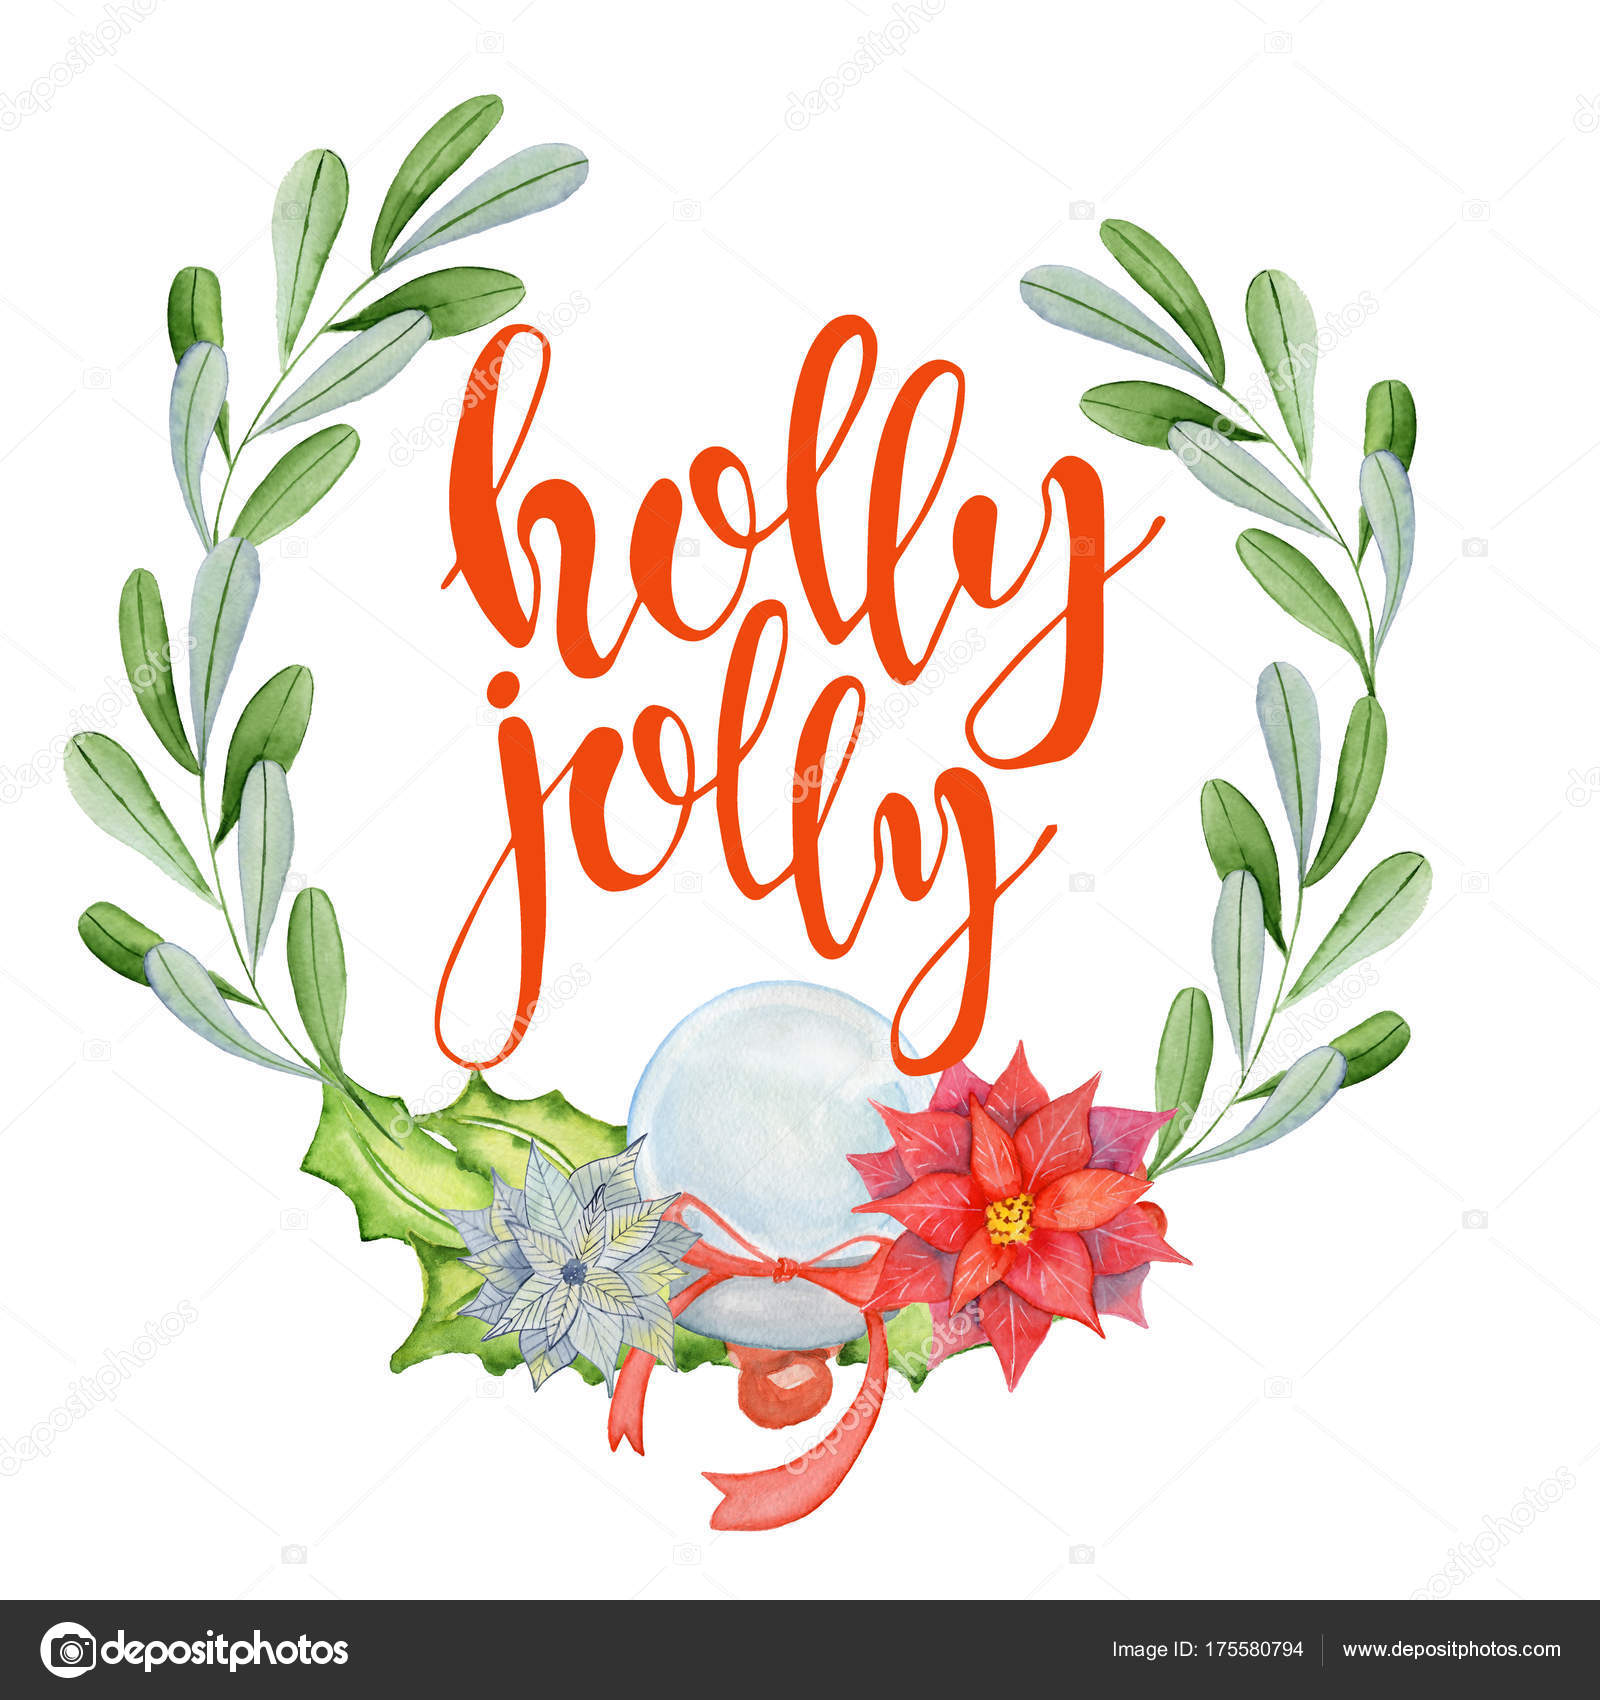 merry christmas watercolor card with floral winter elements happy new year lettering quote holly jolly flower and branch wreath decoration